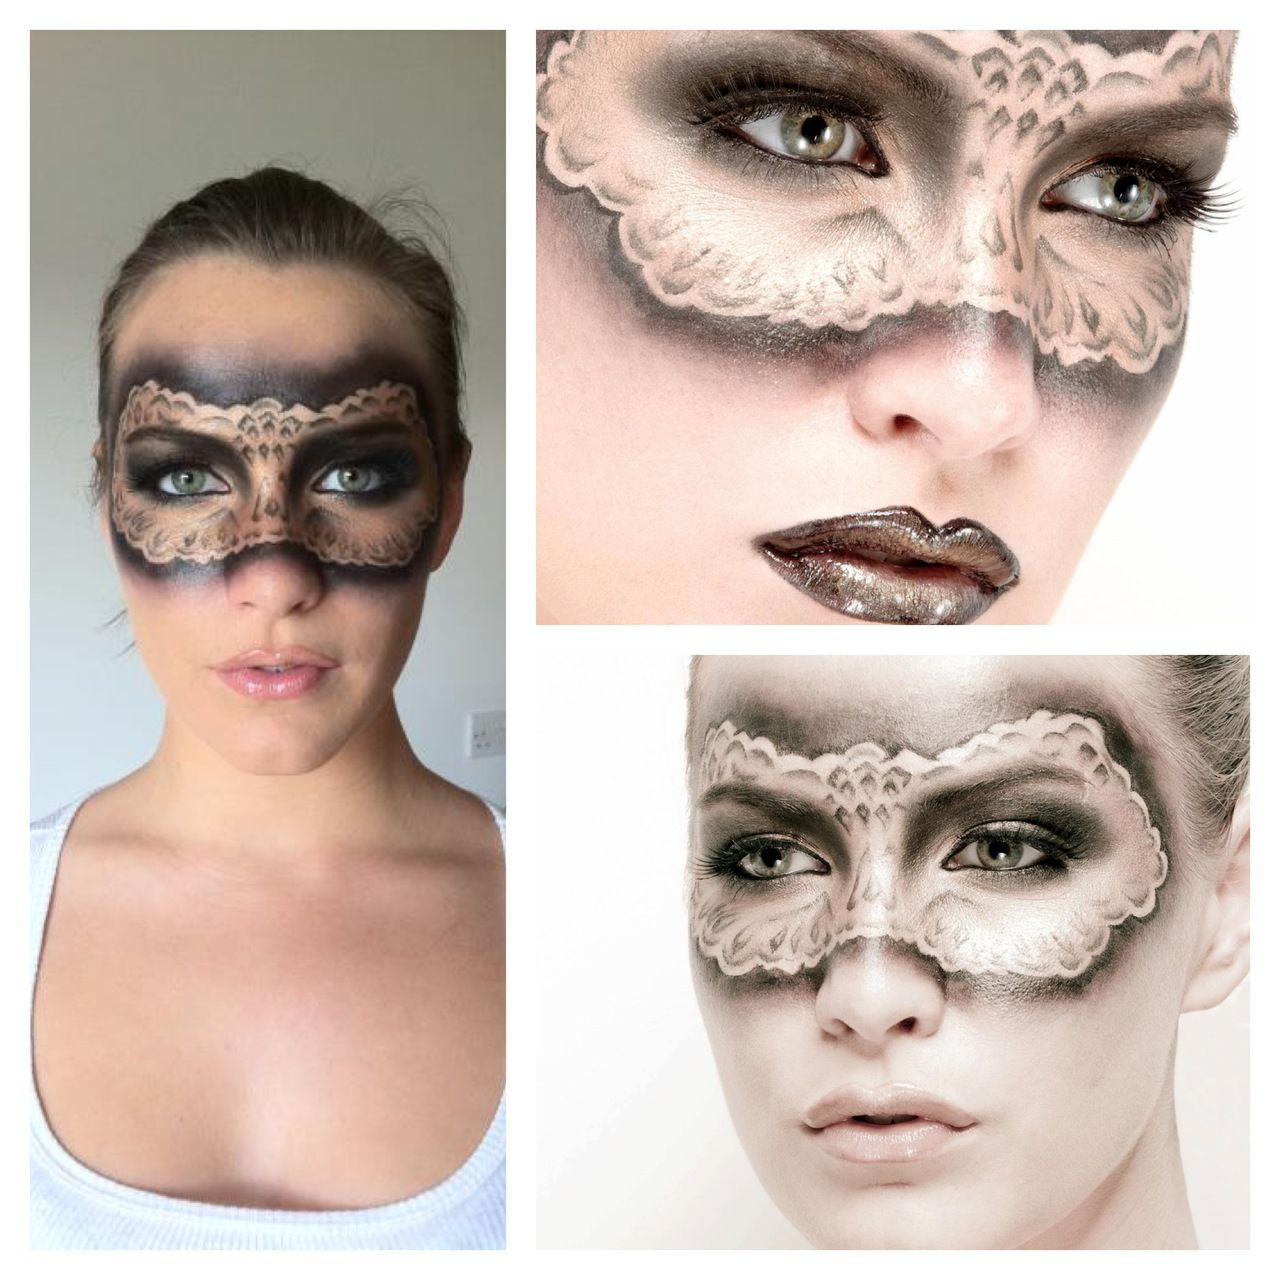 Another behind the scenes makeup image - Masquerade makeup! This ...